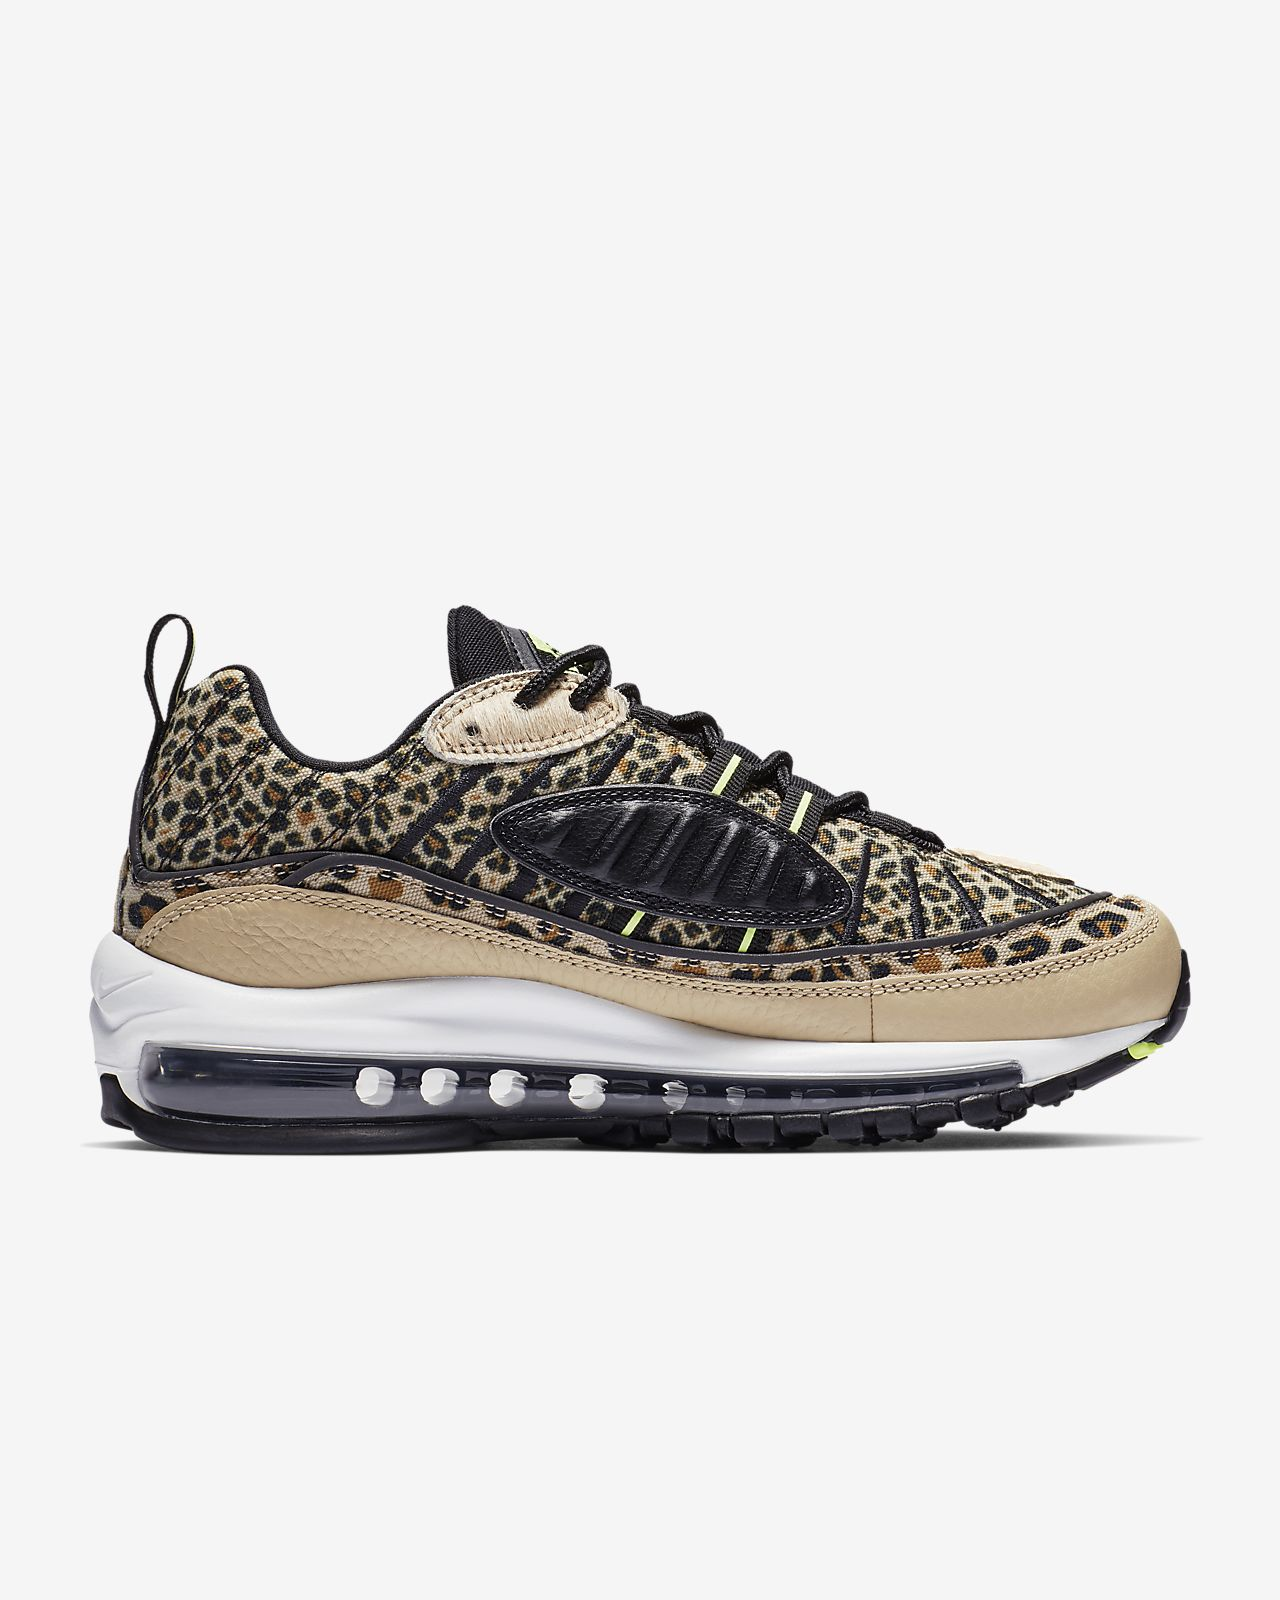 ed7d9bc813fbc6 Nike Air Max 98 Premium Animal Women s Shoe. Nike.com ZA